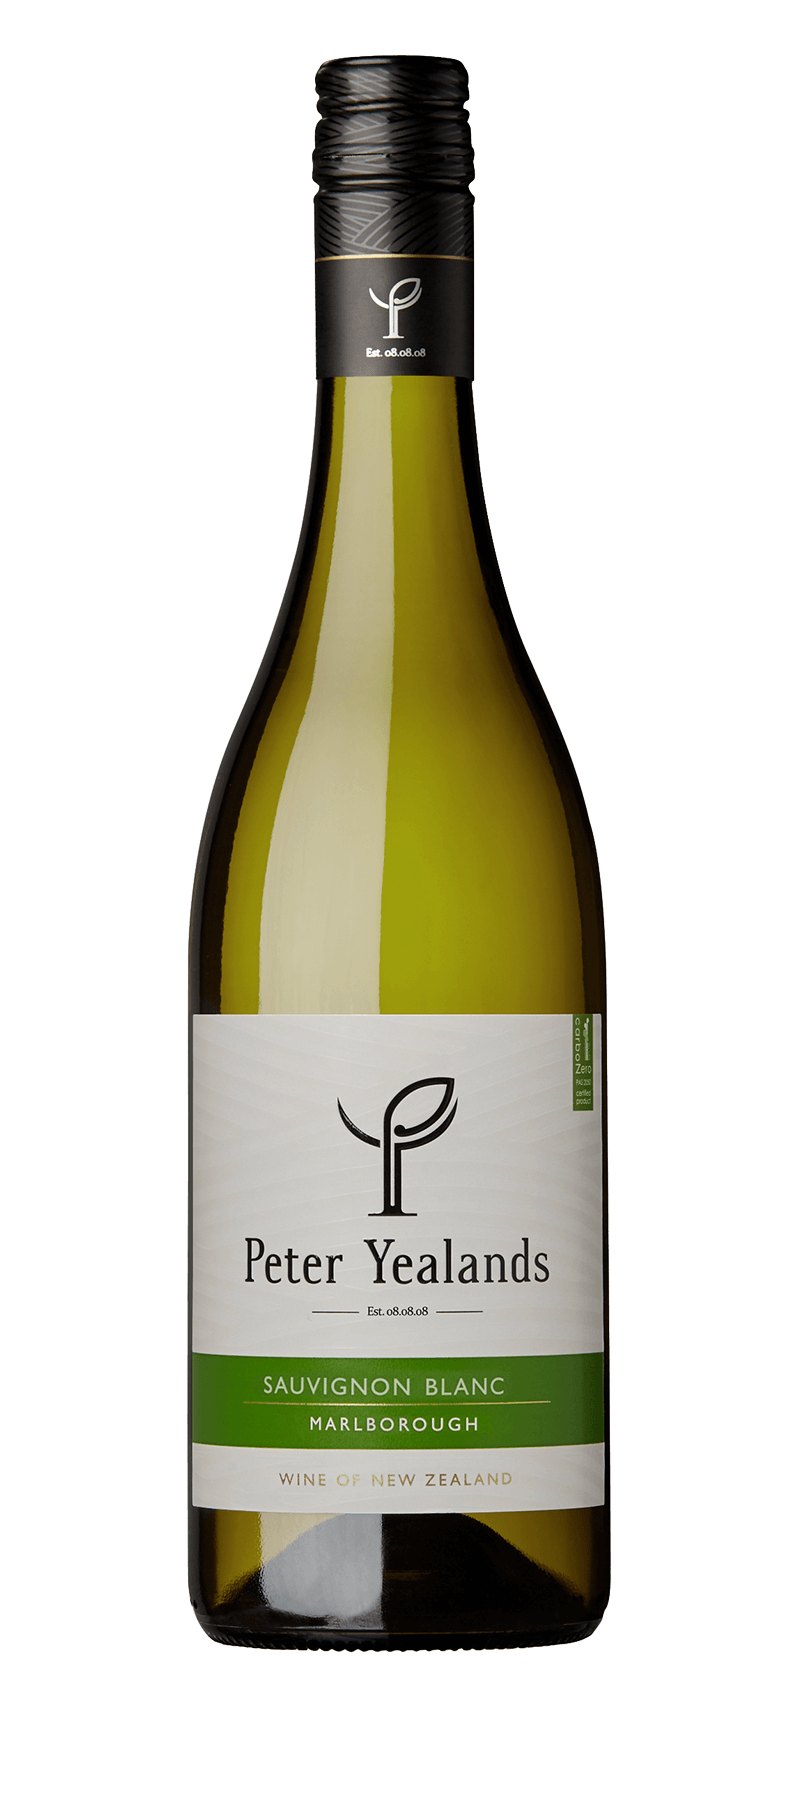 Enjoy International #SauvignonBlancDay with Peter Yealands Sauvignon Blanc 2017